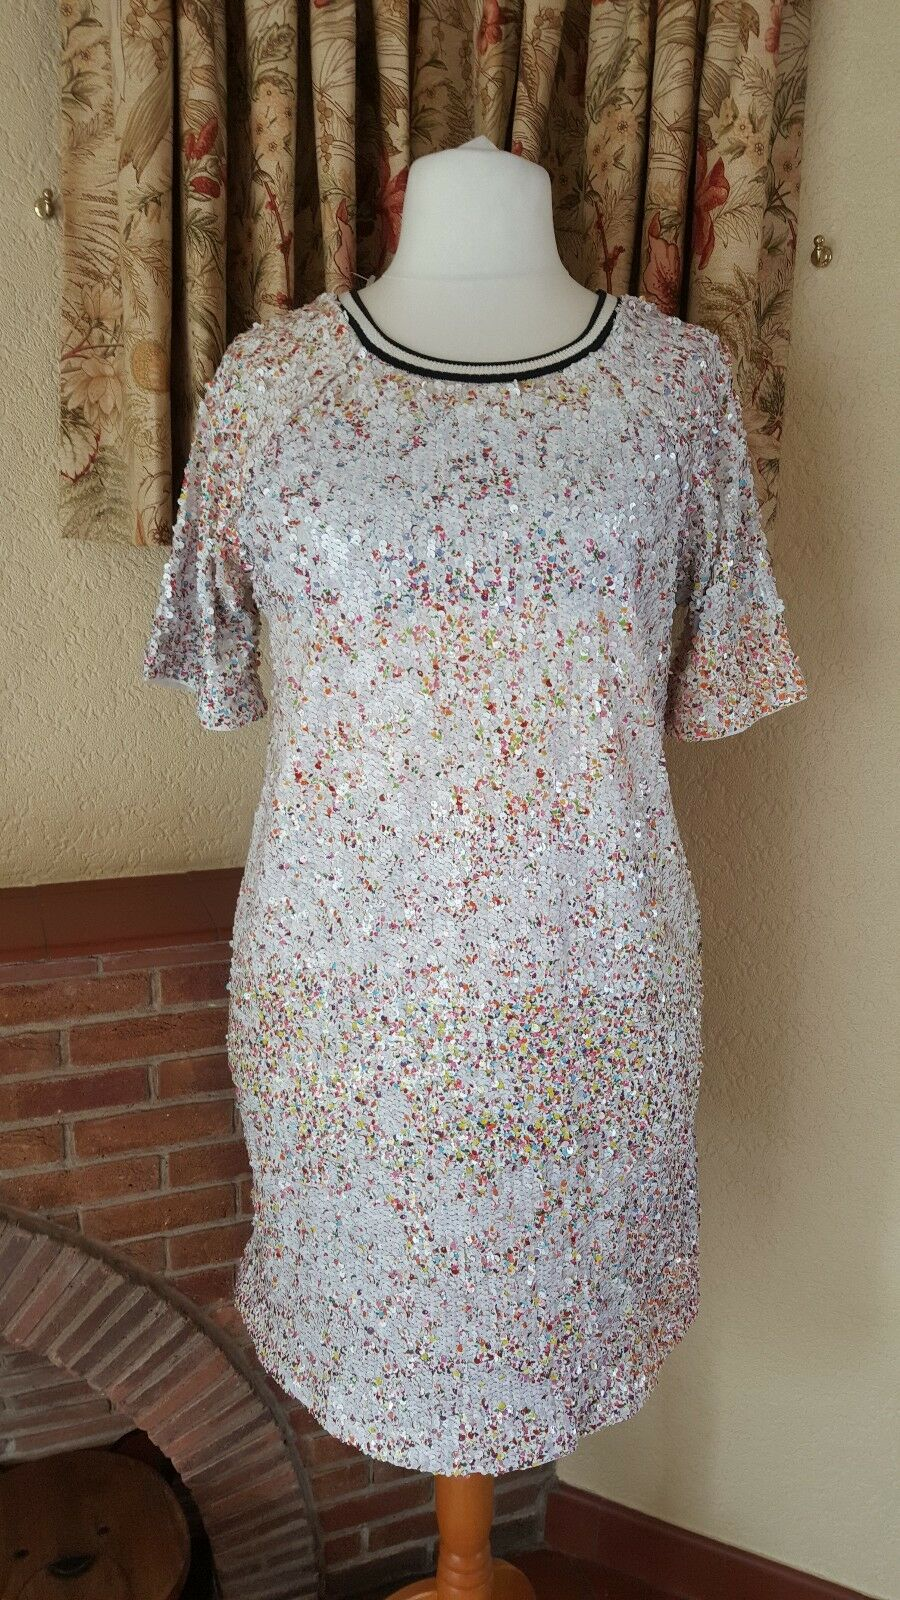 WHITE MULTICOLOURED SEQUIN SUMMER DRESS FROM NEXT SIZE 18 - NEW WITH TAGS